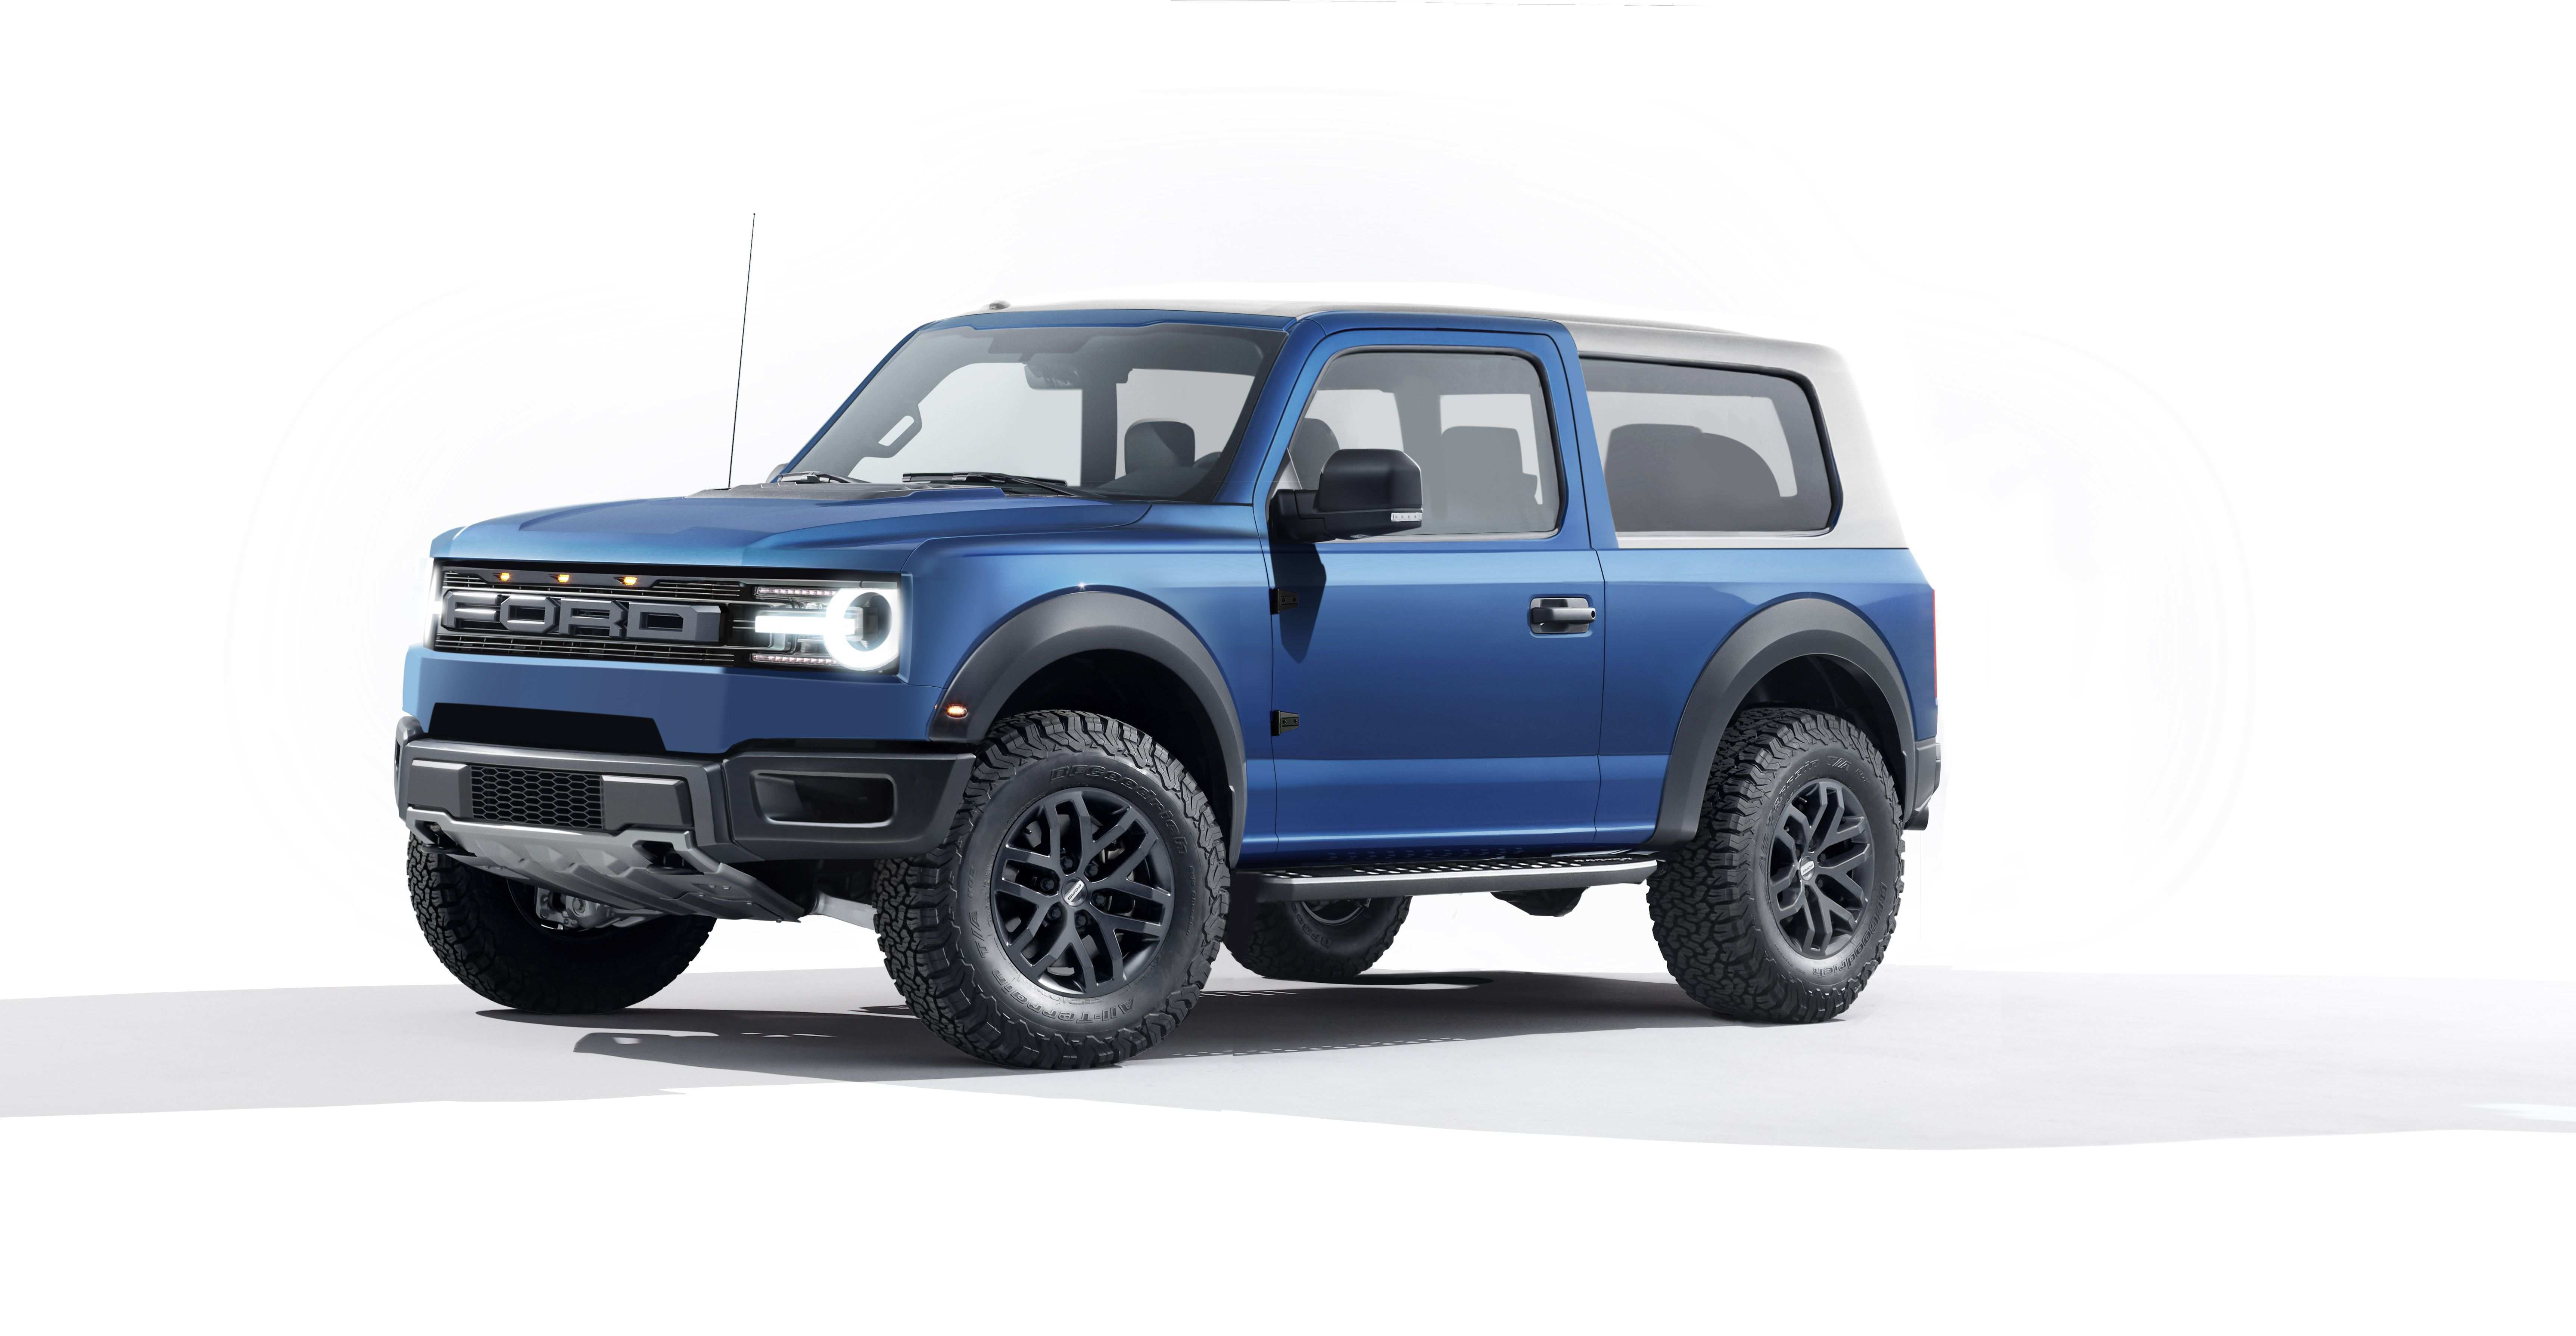 96 The 2020 Ford Bronco Latest News Speed Test